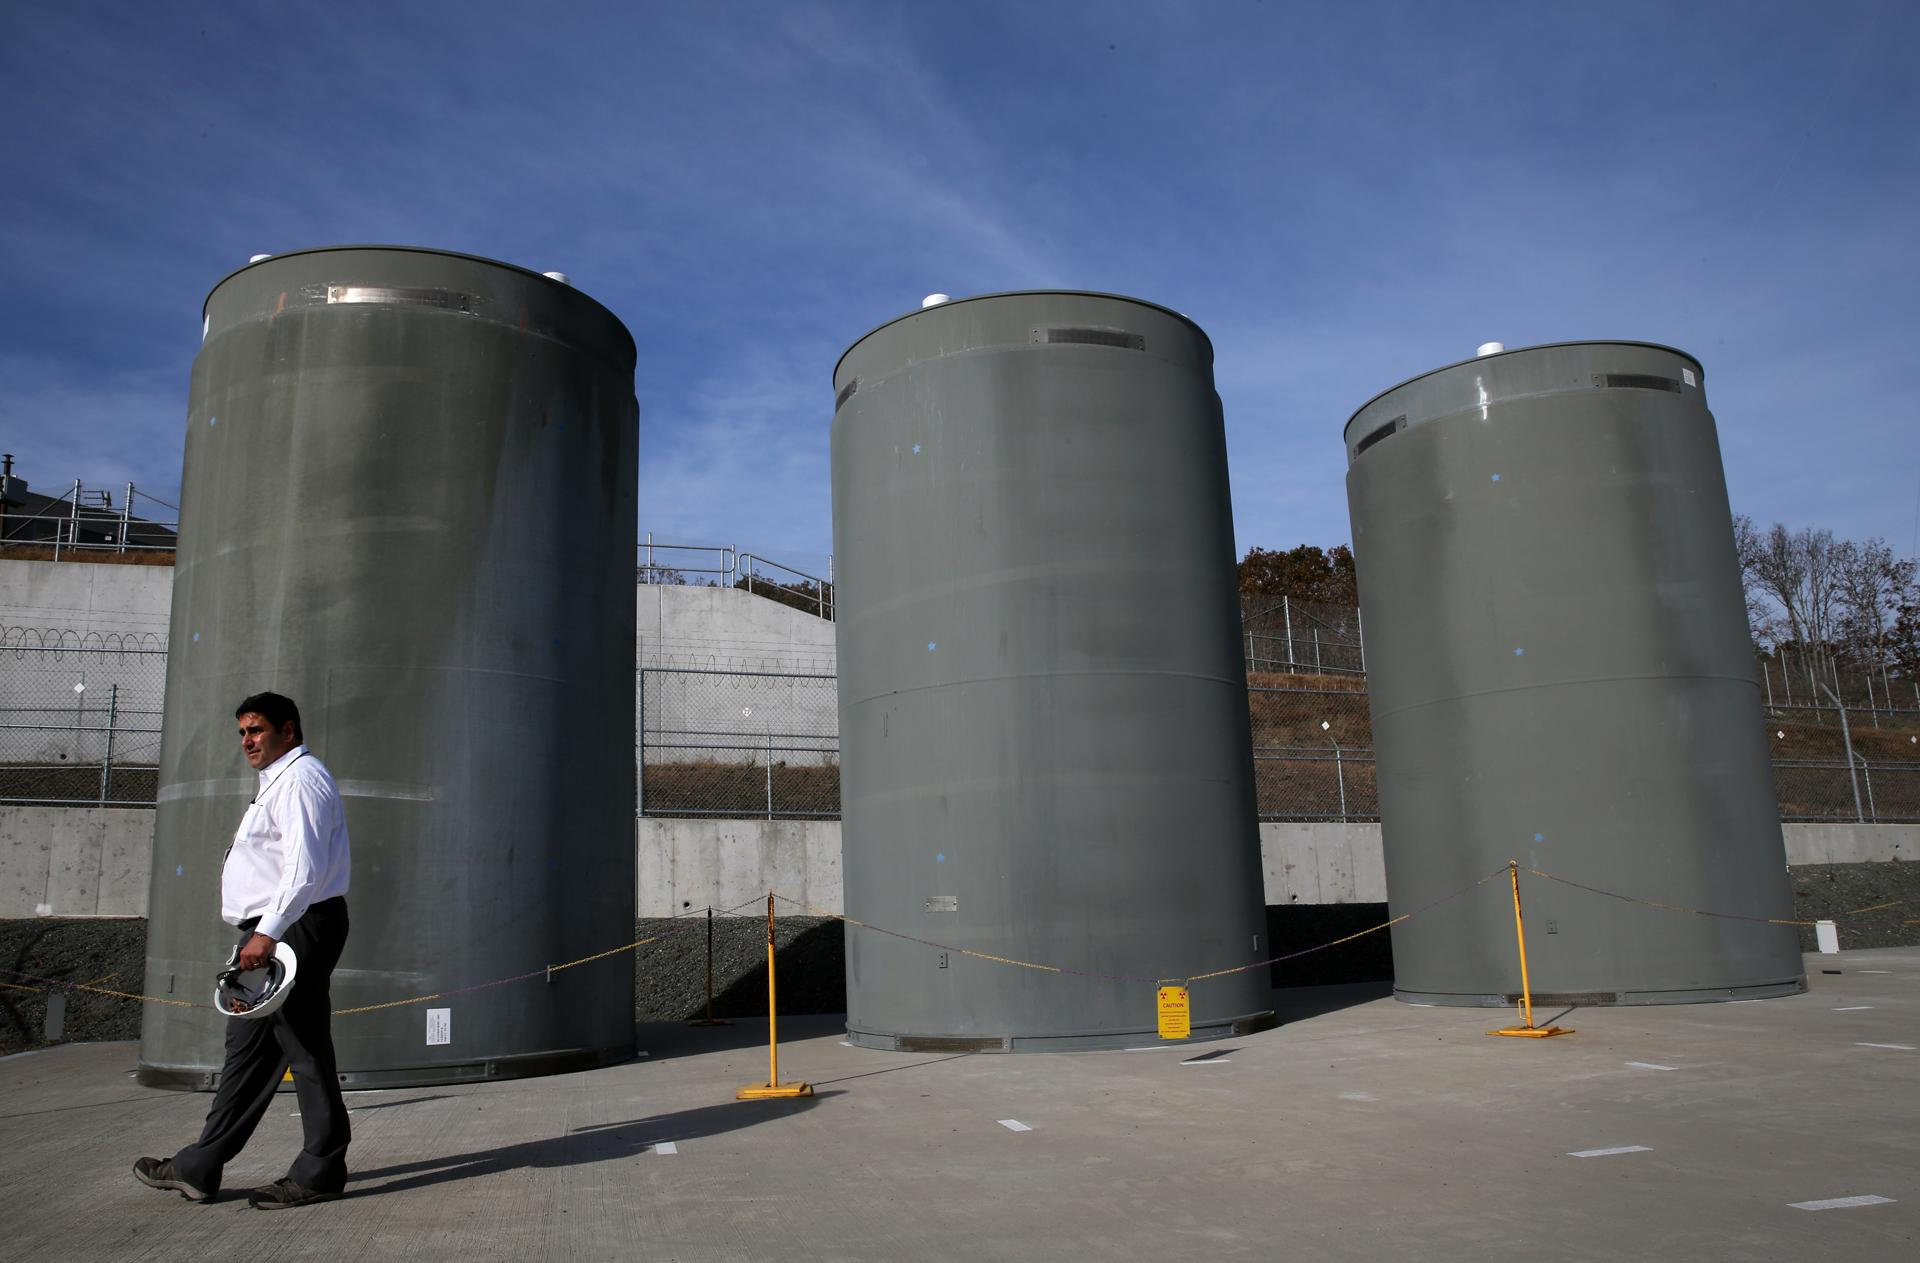 David Noyes of Entergy walked past dry cask storage units last week during a tour of the Pilgrim nuclear plant.